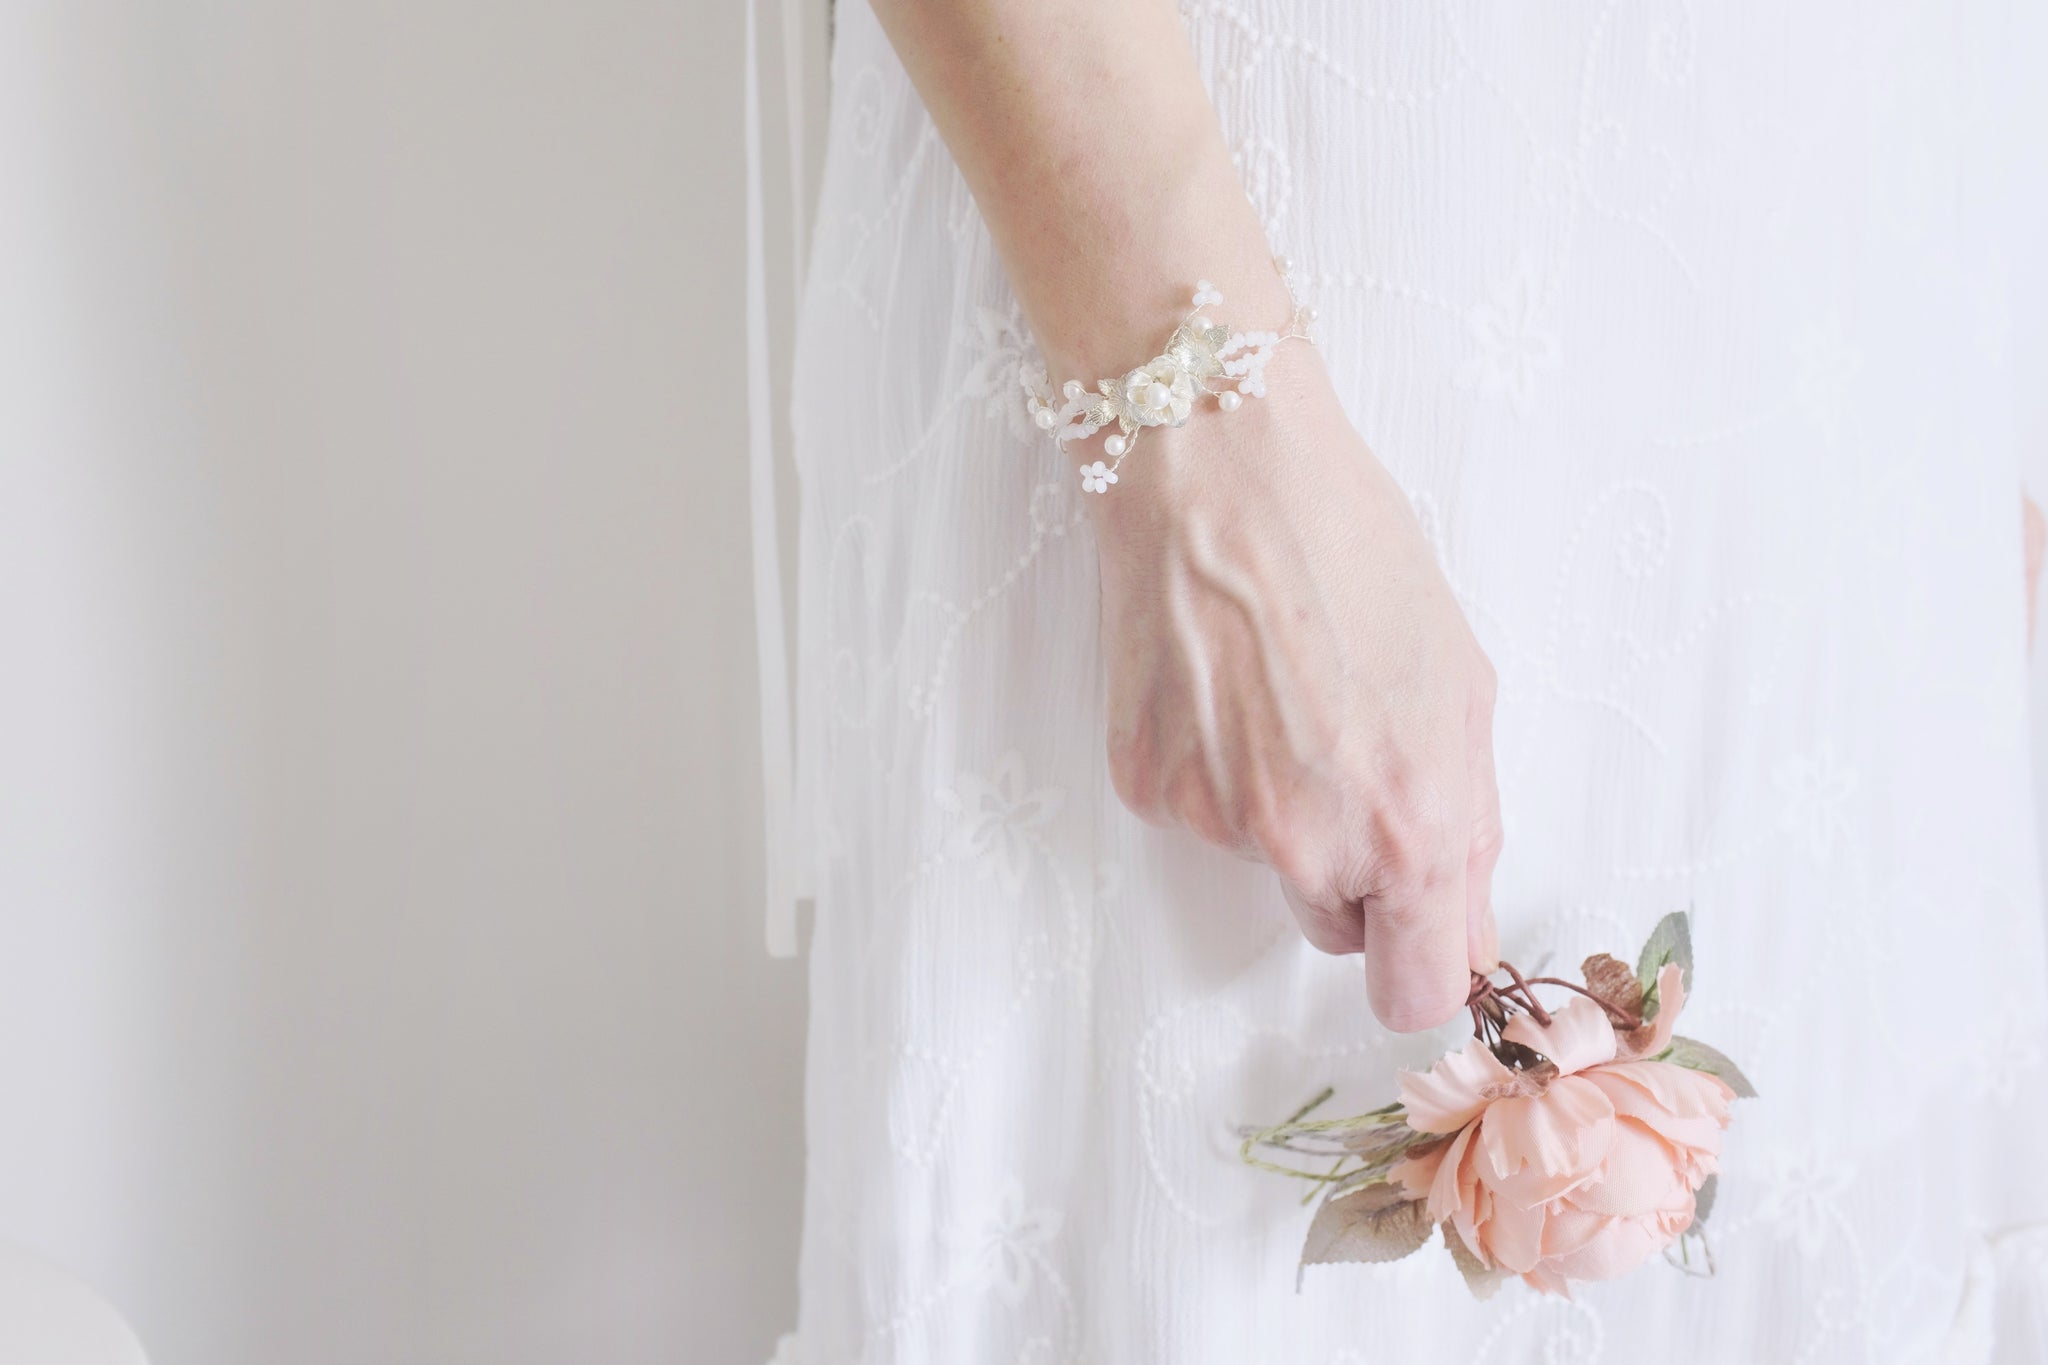 At Annadria, bespoke bridal accessories don't have to cost more